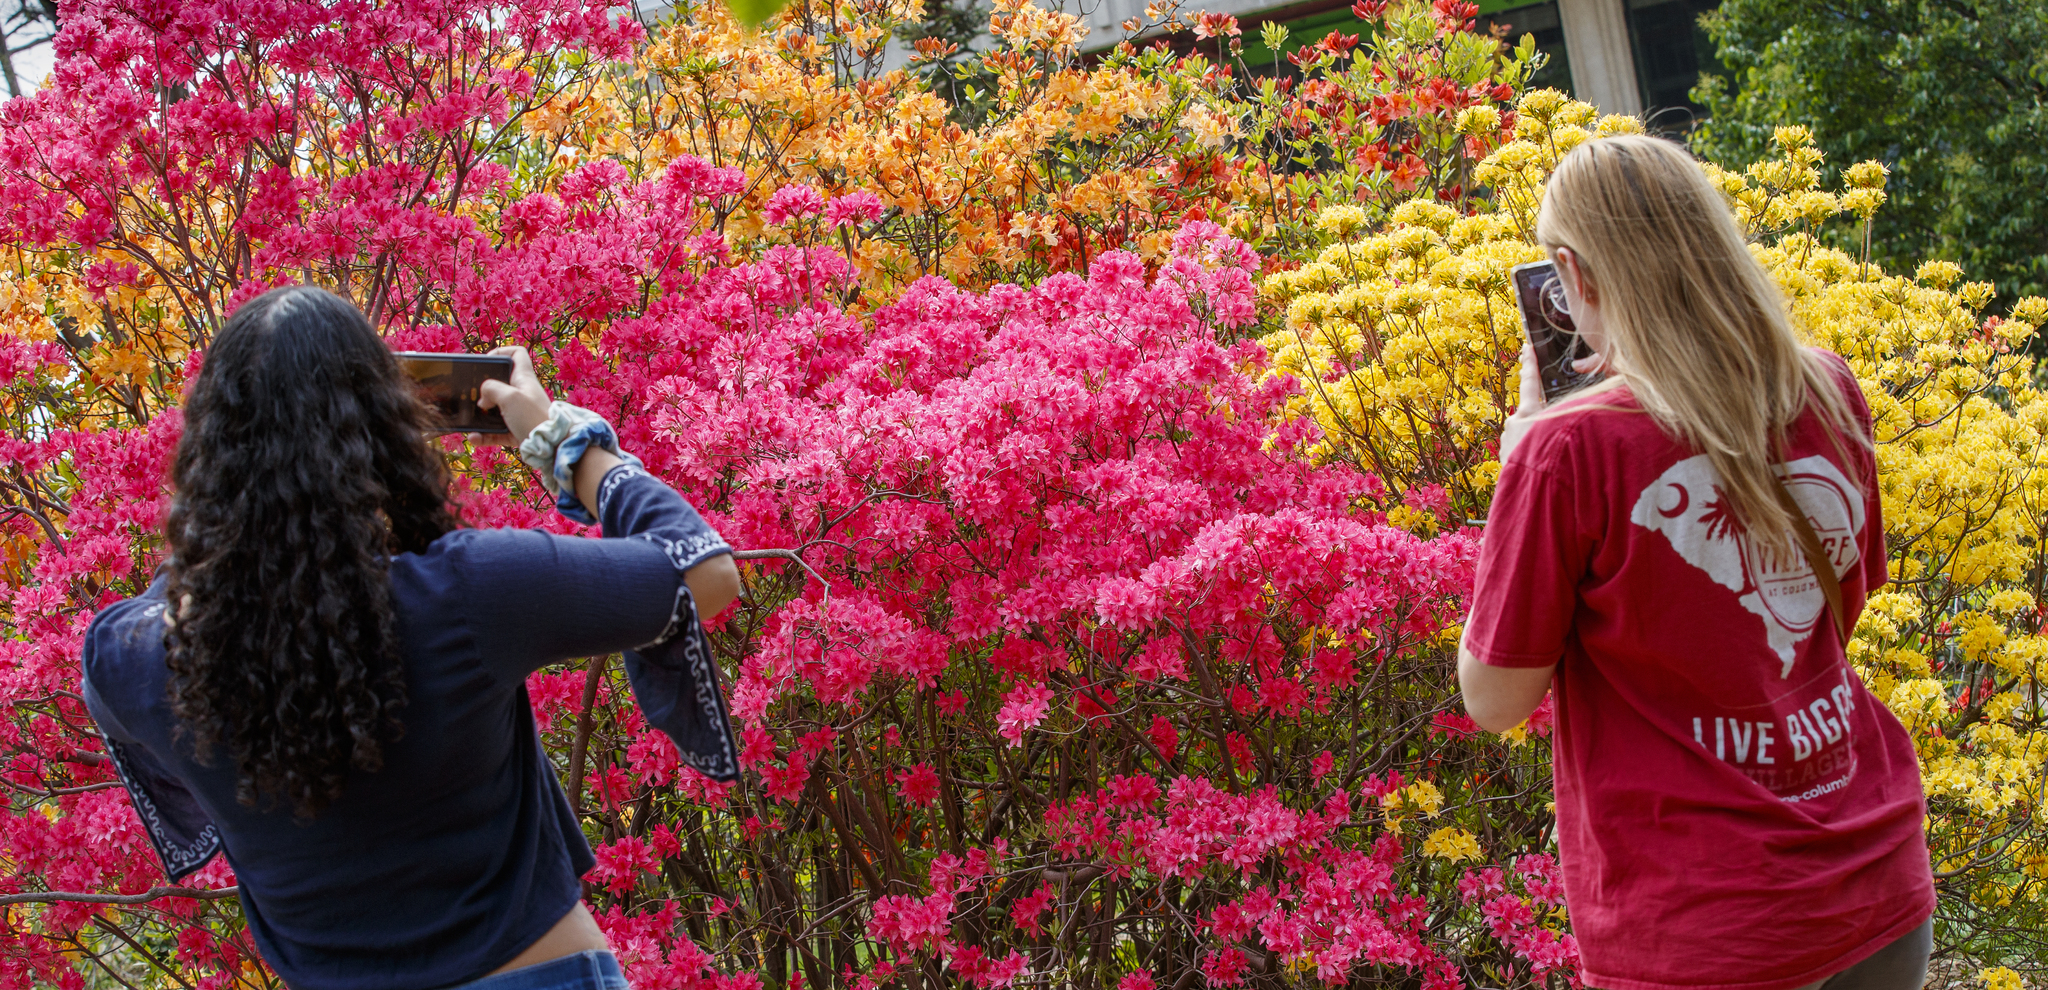 Female students take photos on their phone of the colorful spring blooms on campus